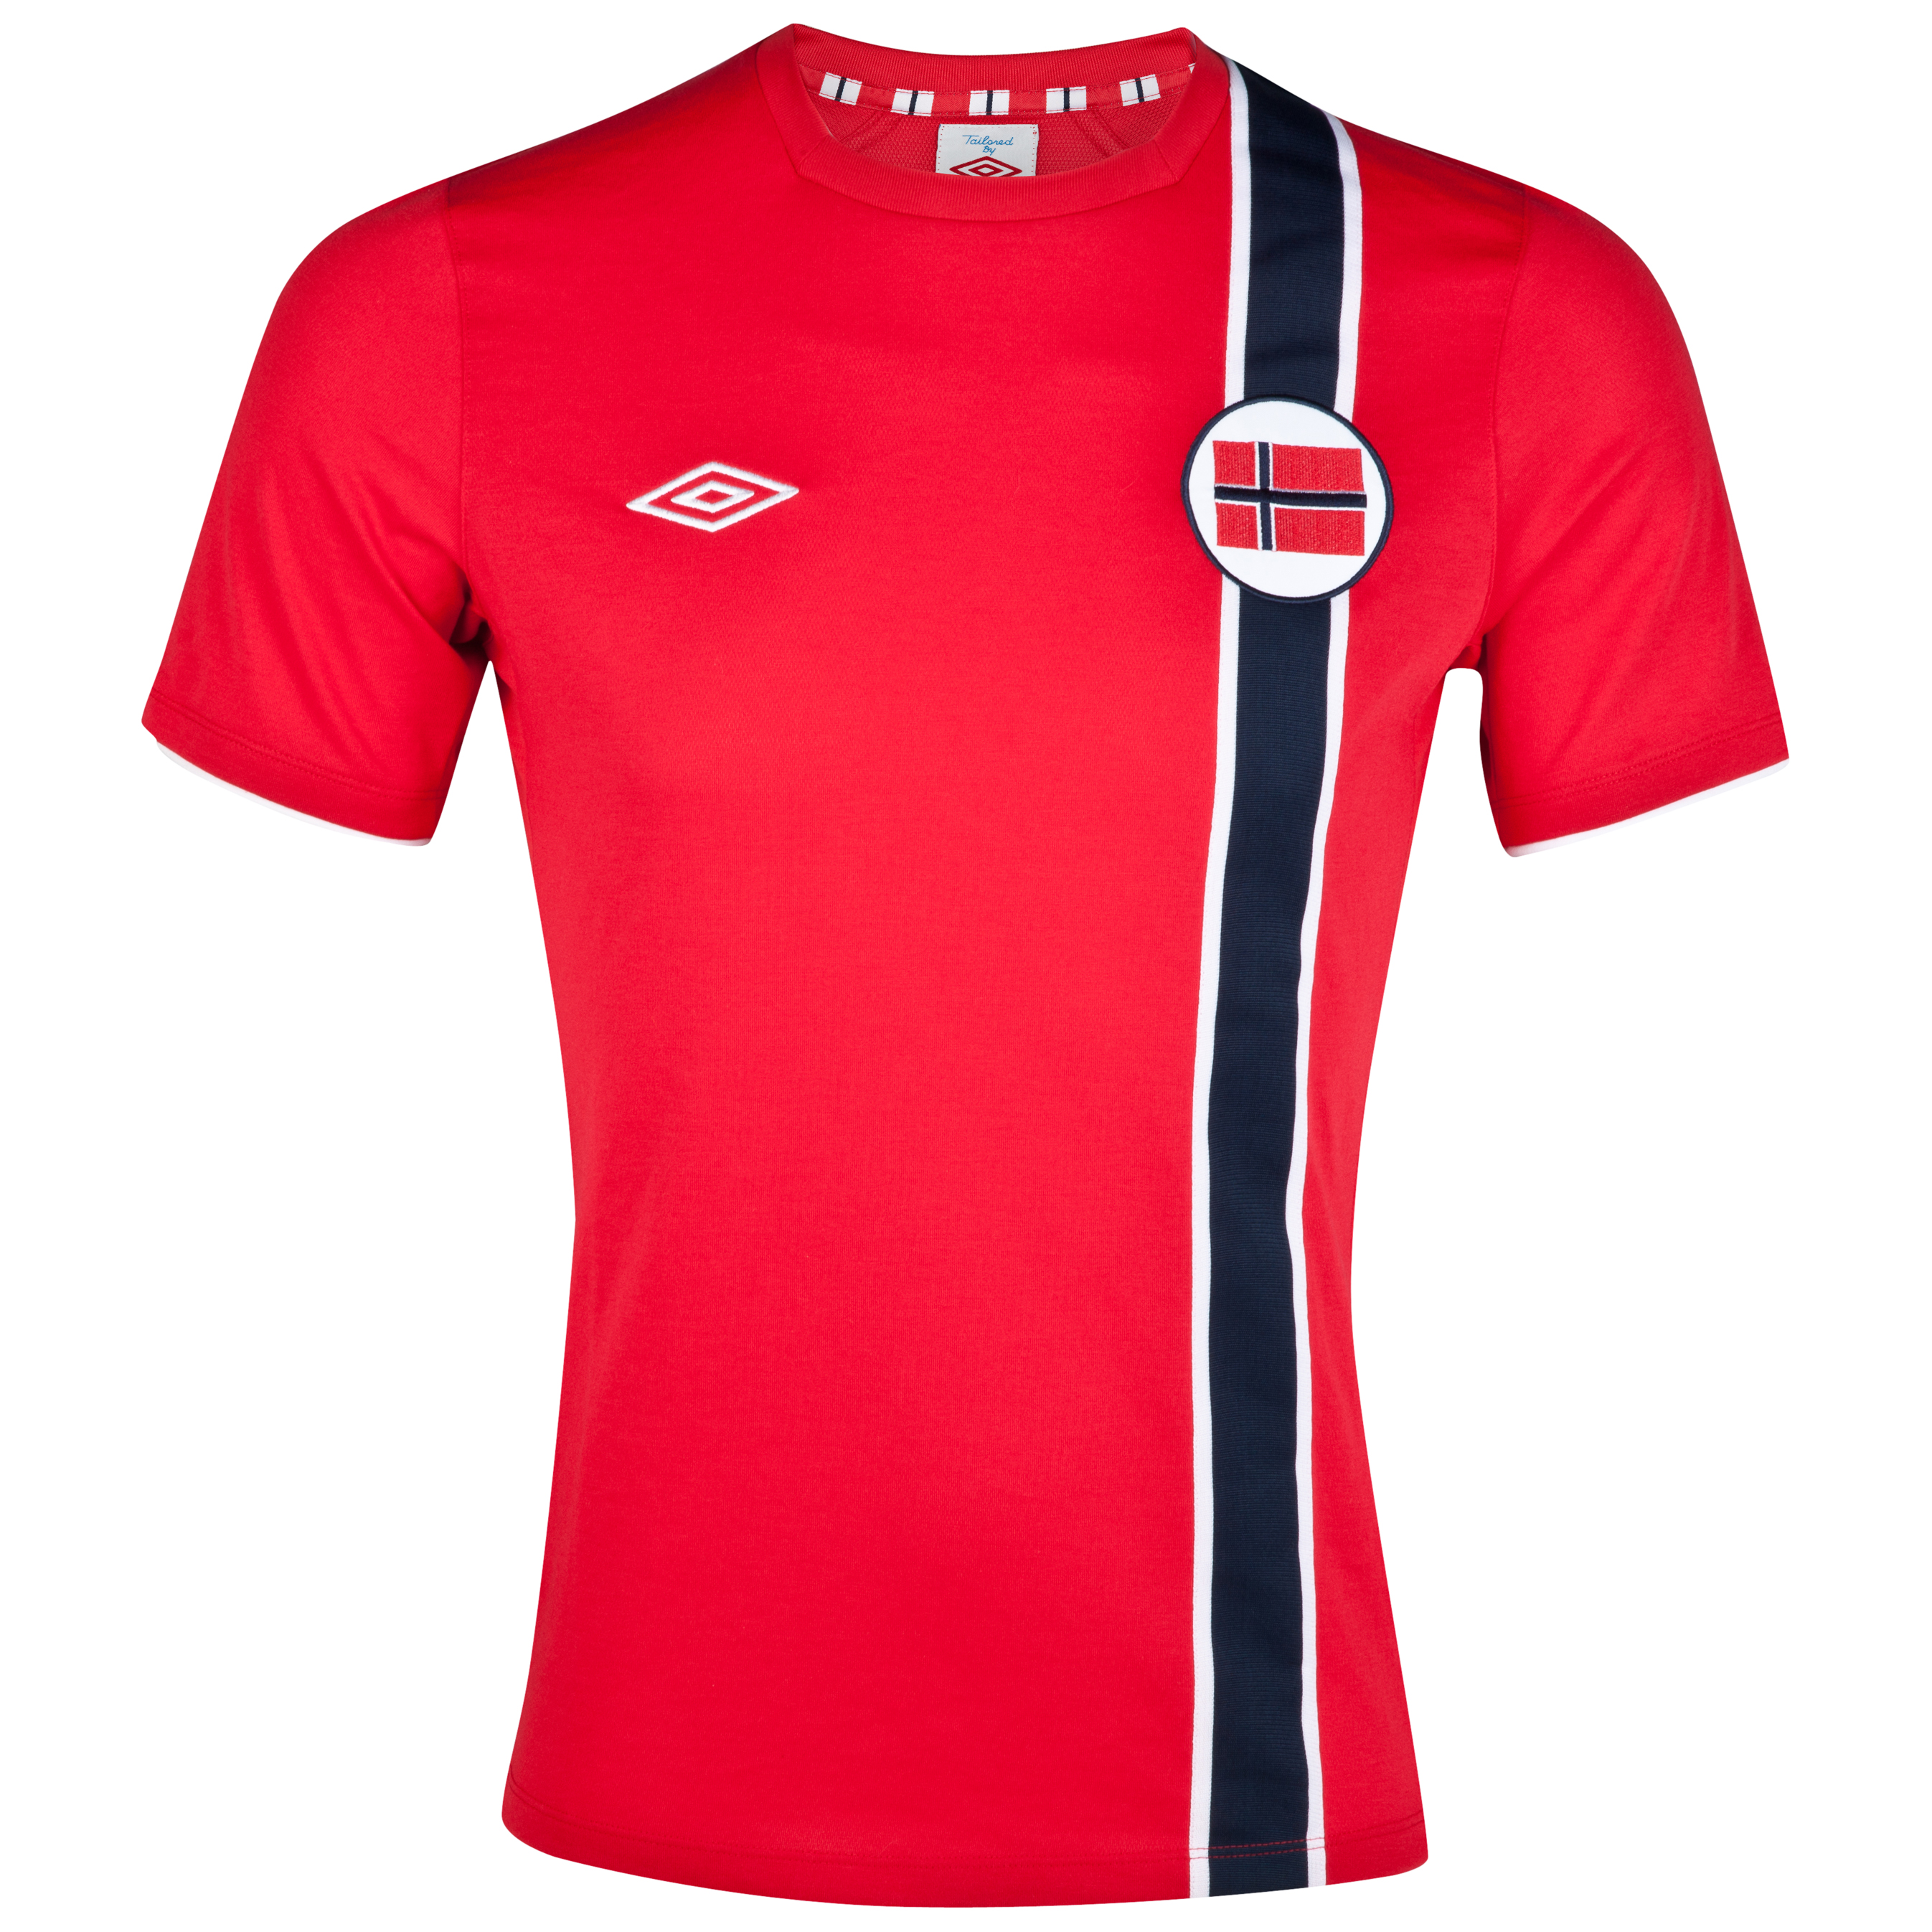 Norway Home Shirt 2012/13